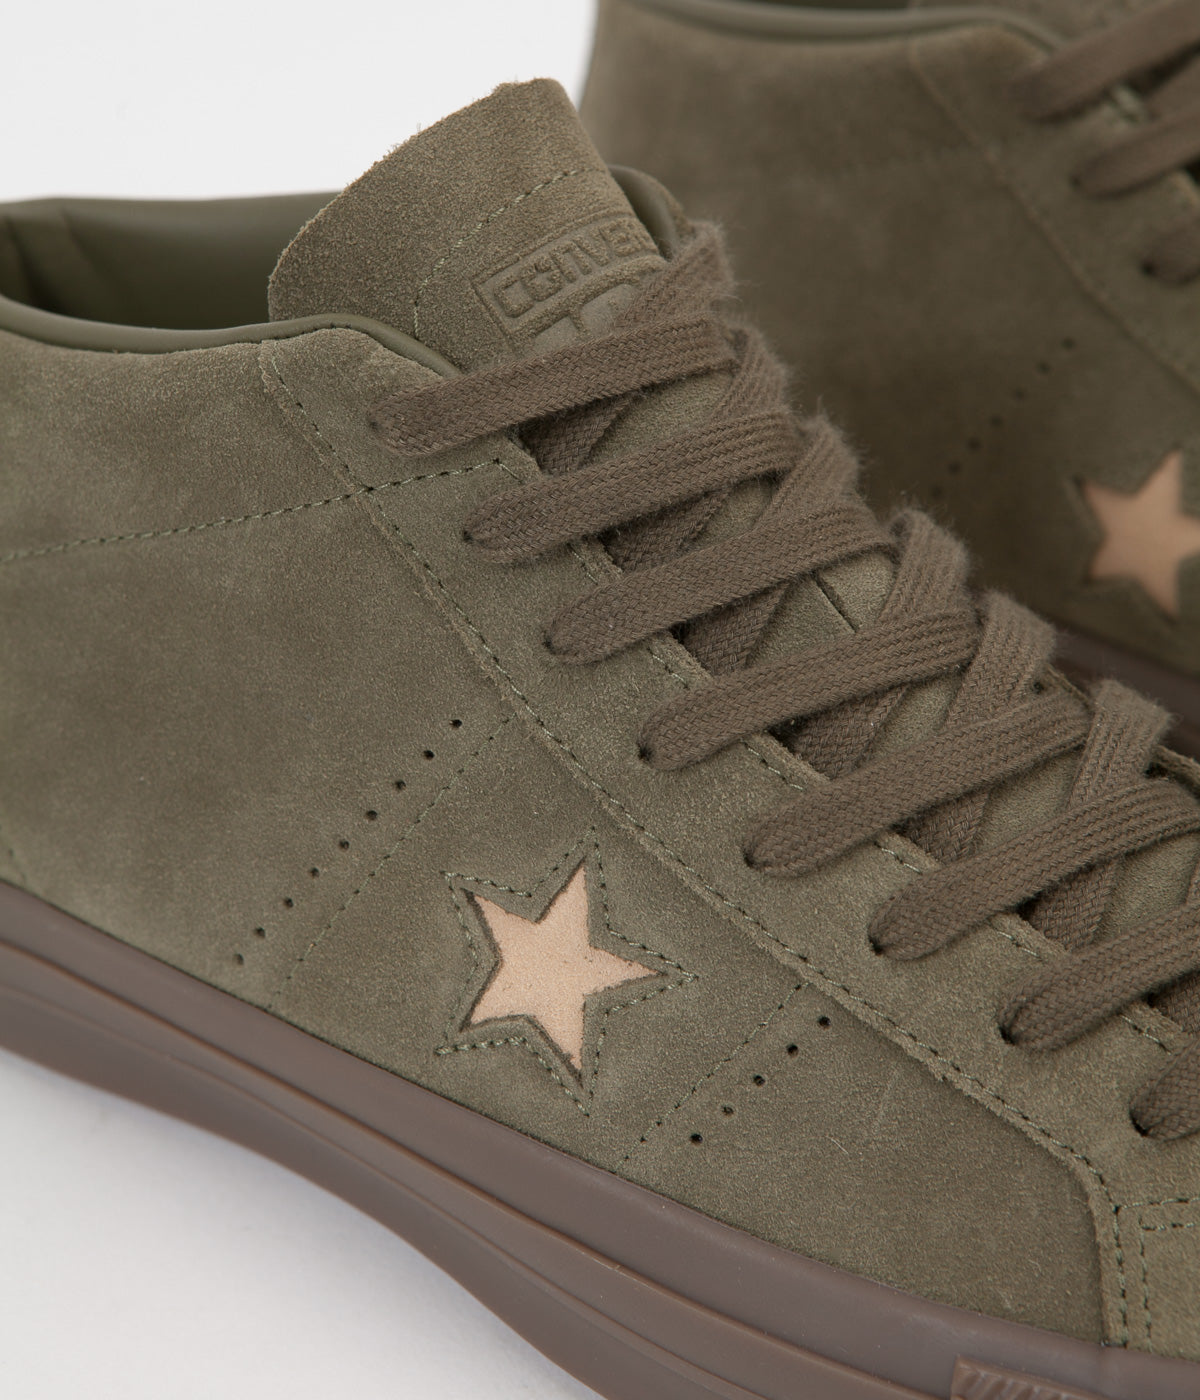 Converse One Star Pro Mid Size 7